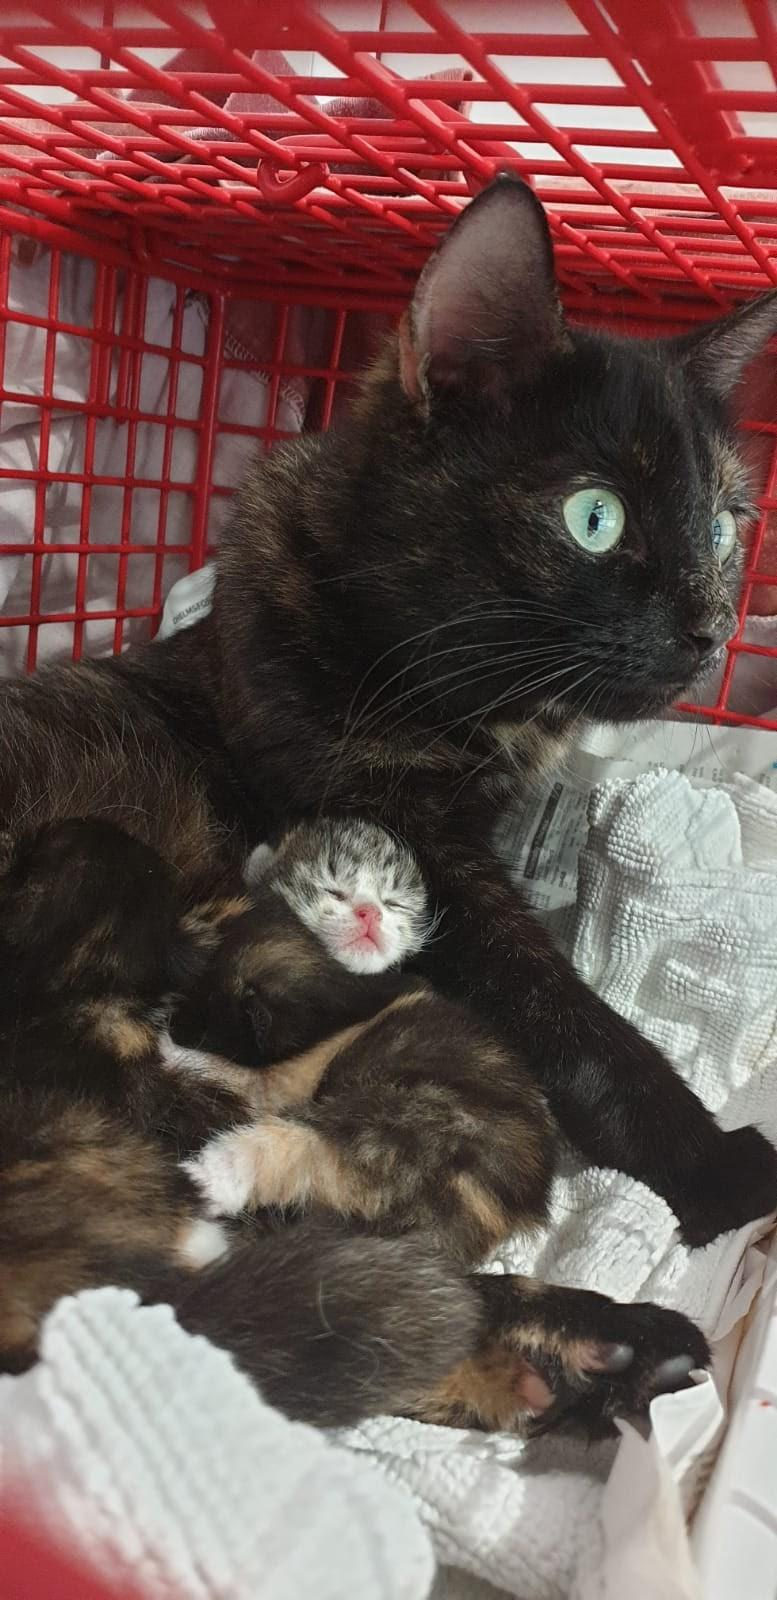 One cat was abandoned while pregnant and has now adopted another abandoned kitten, and taken it into her litter